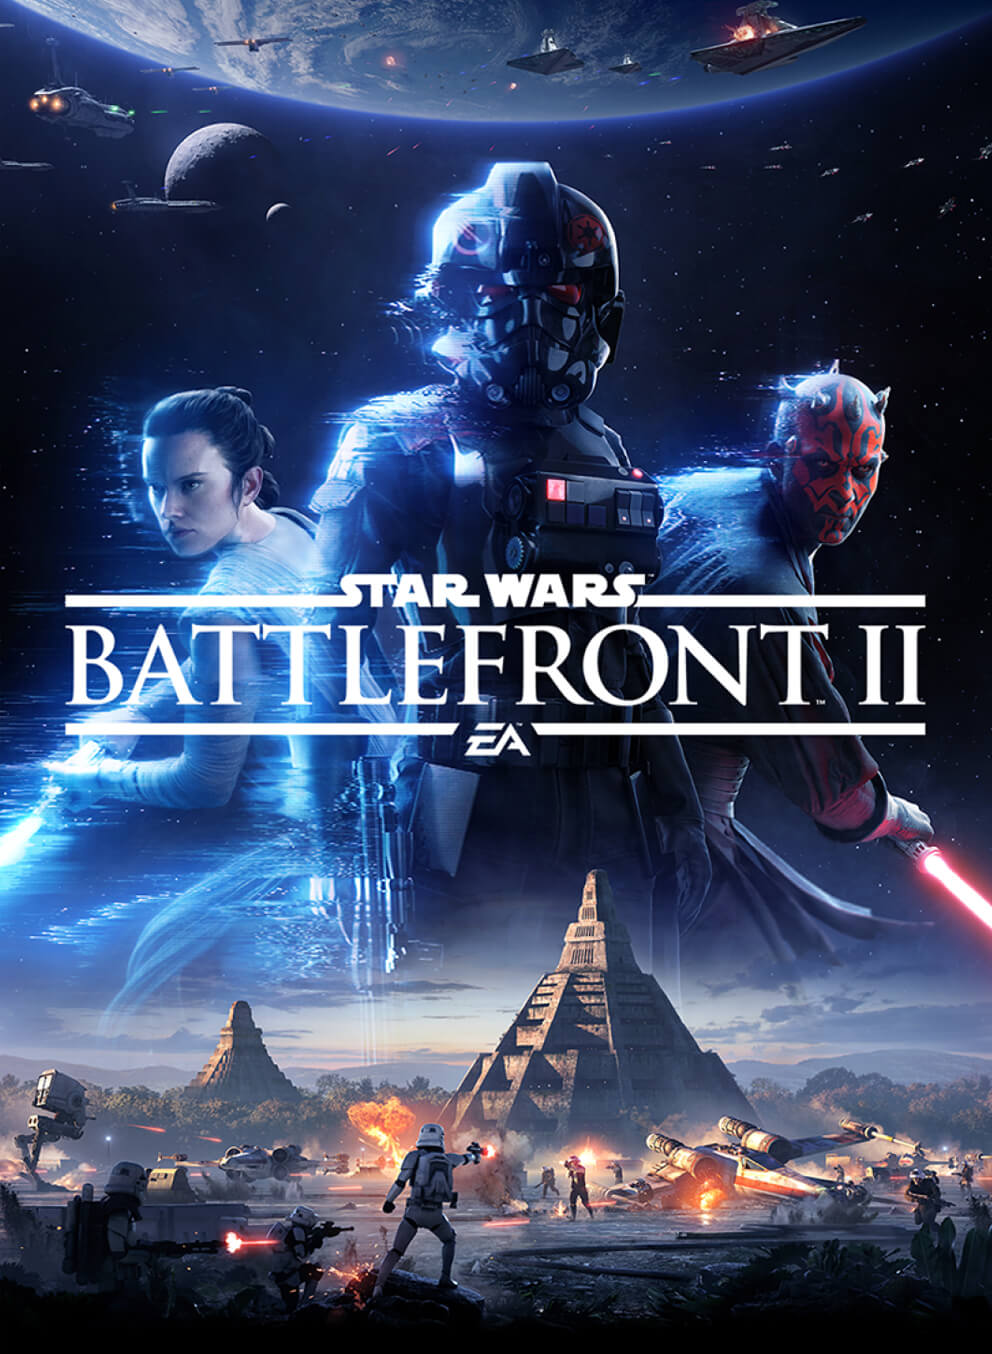 Star Wars Battlefront II (DICE)